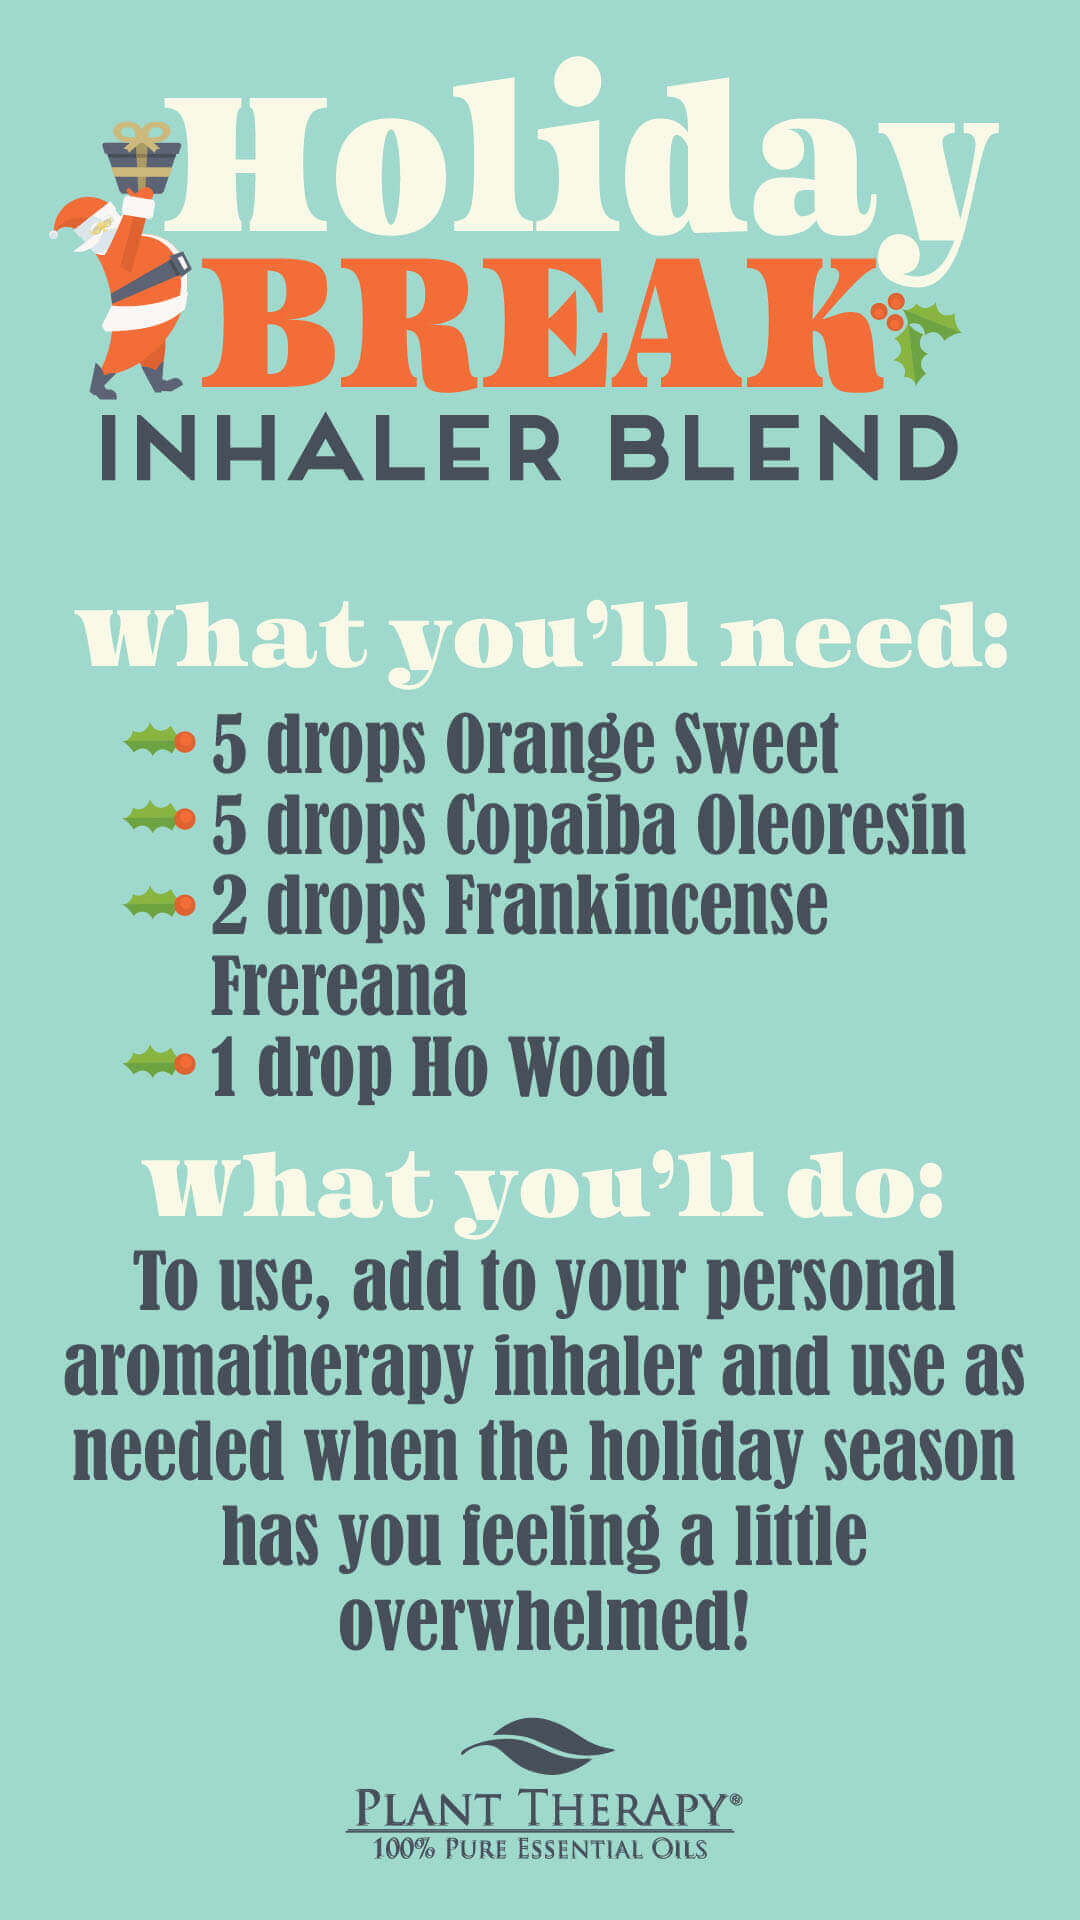 holiday break inhaler blend plant therapy